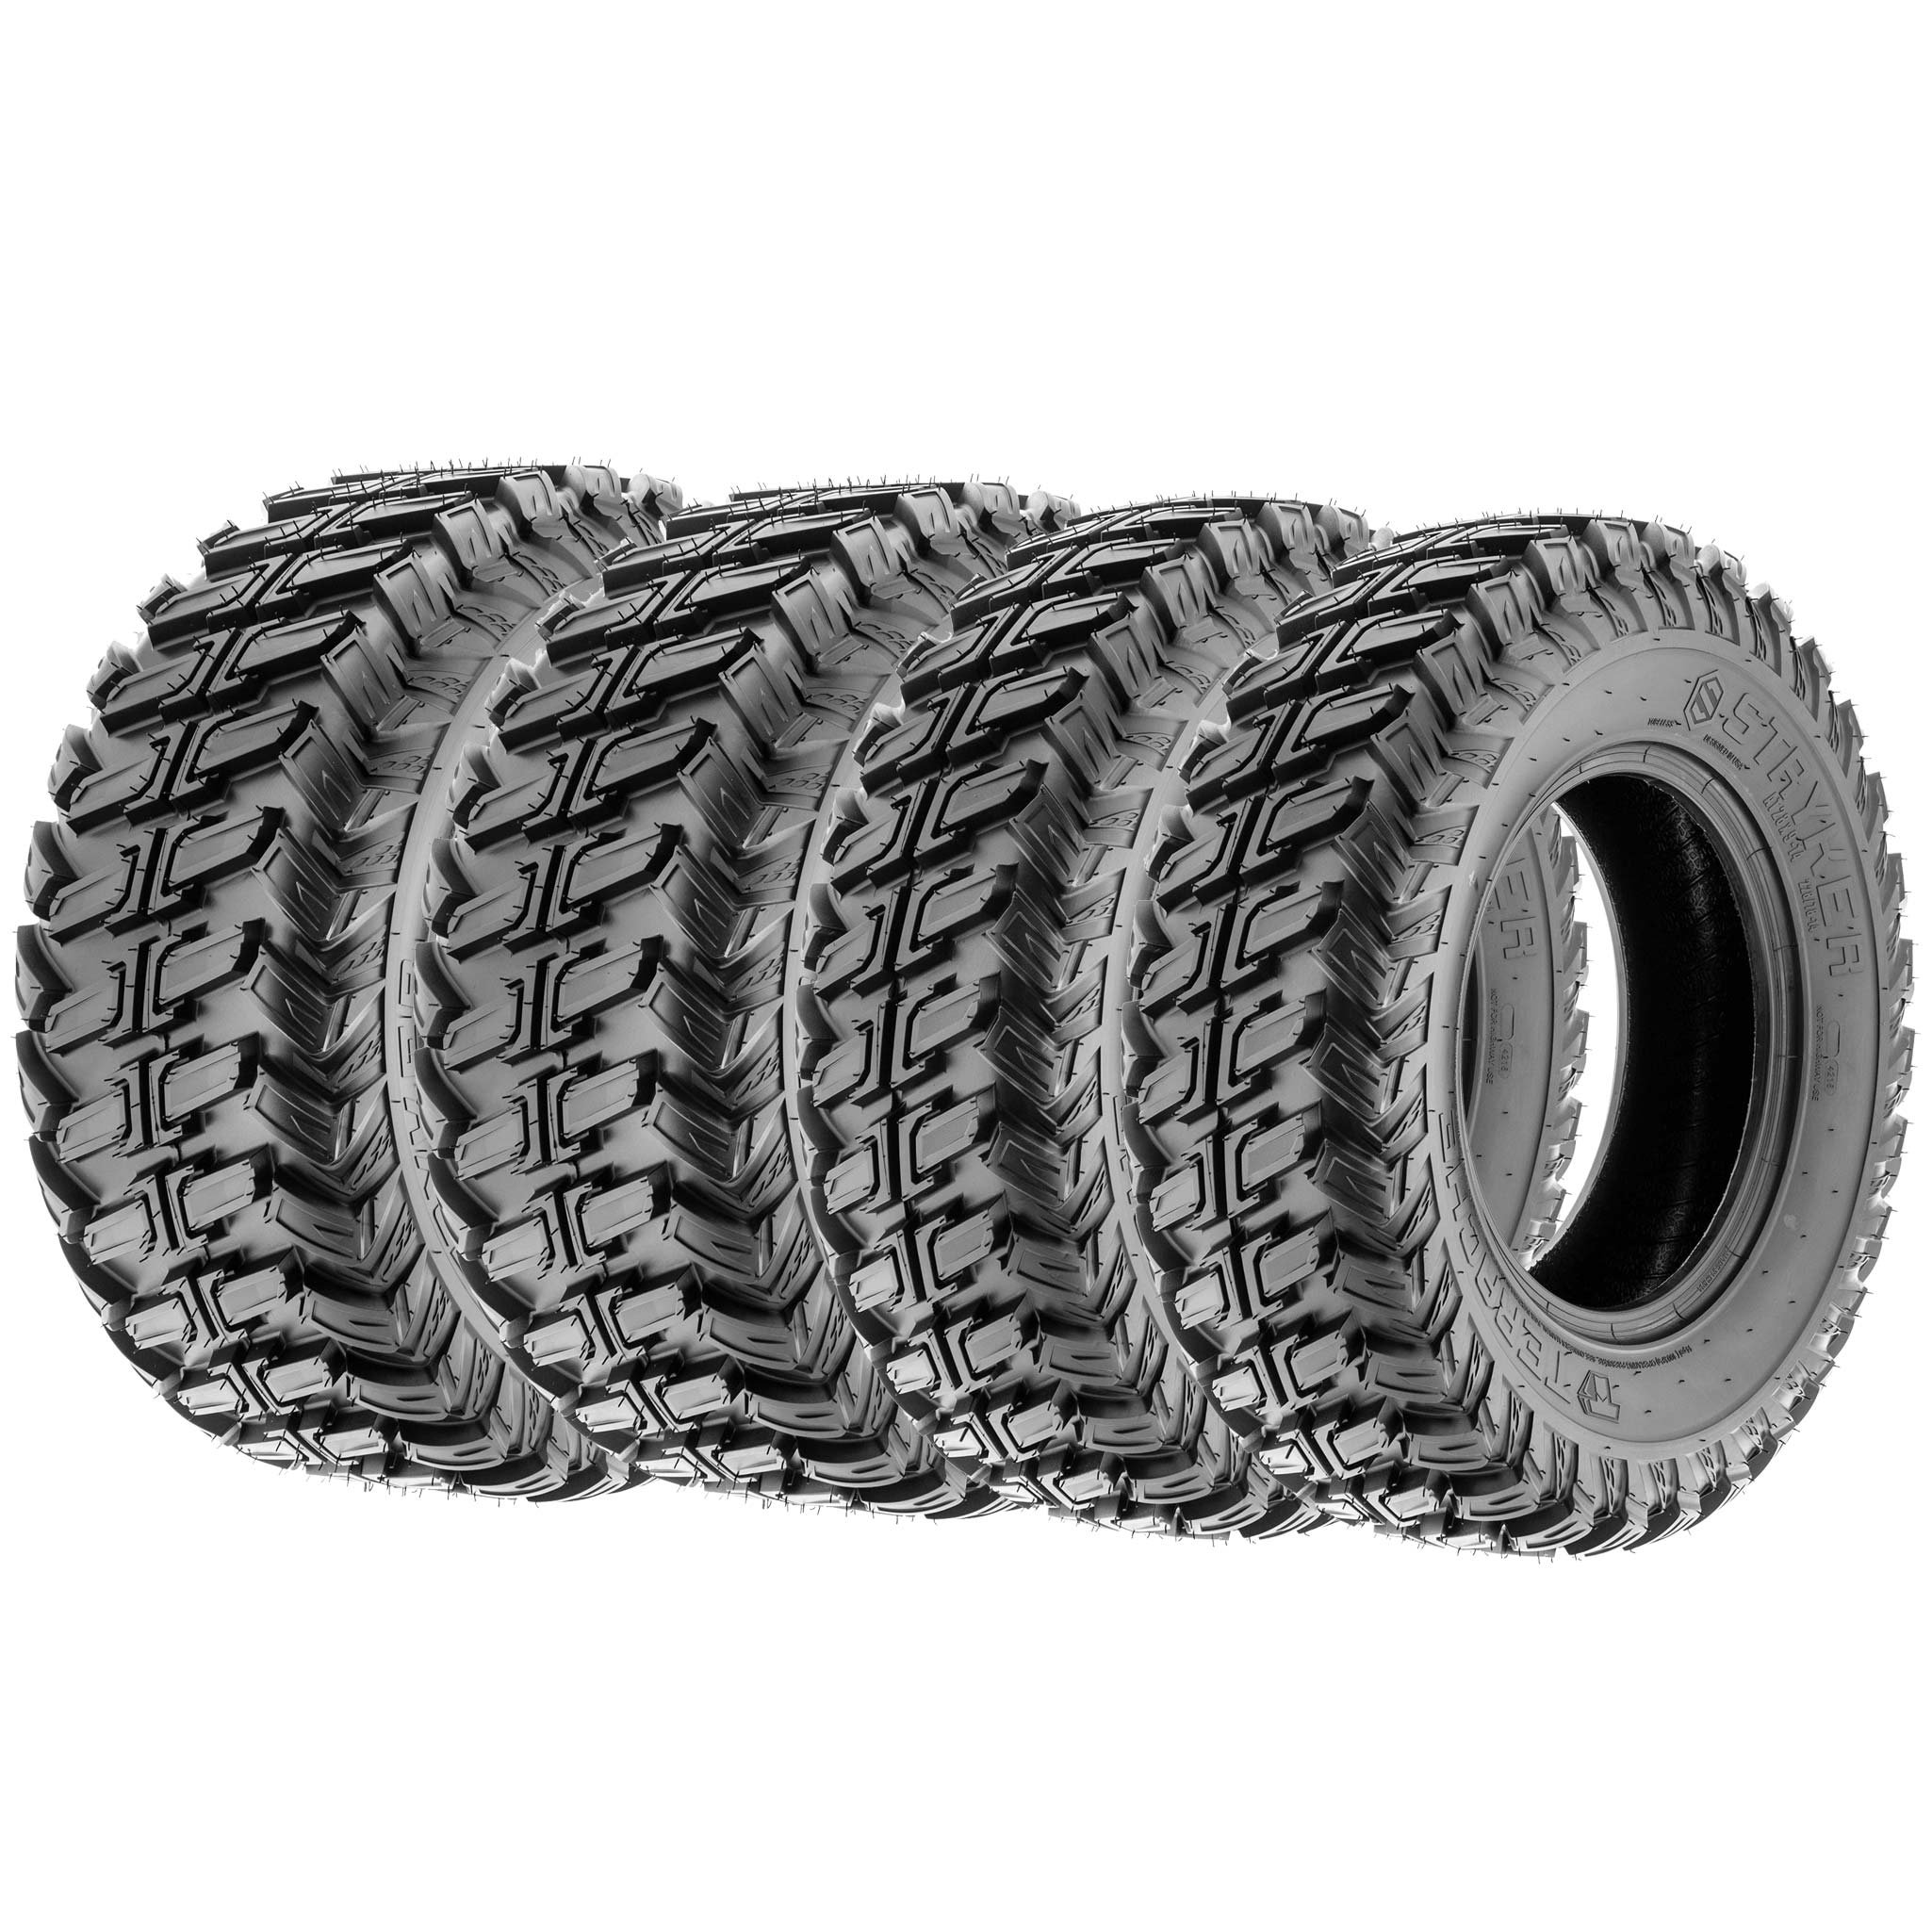 Terache STRYKER AT All Trail ATV UTV Tires 28x9-14 & 28x11-14 8 Ply (Complete Set of 4, Front & Rear)